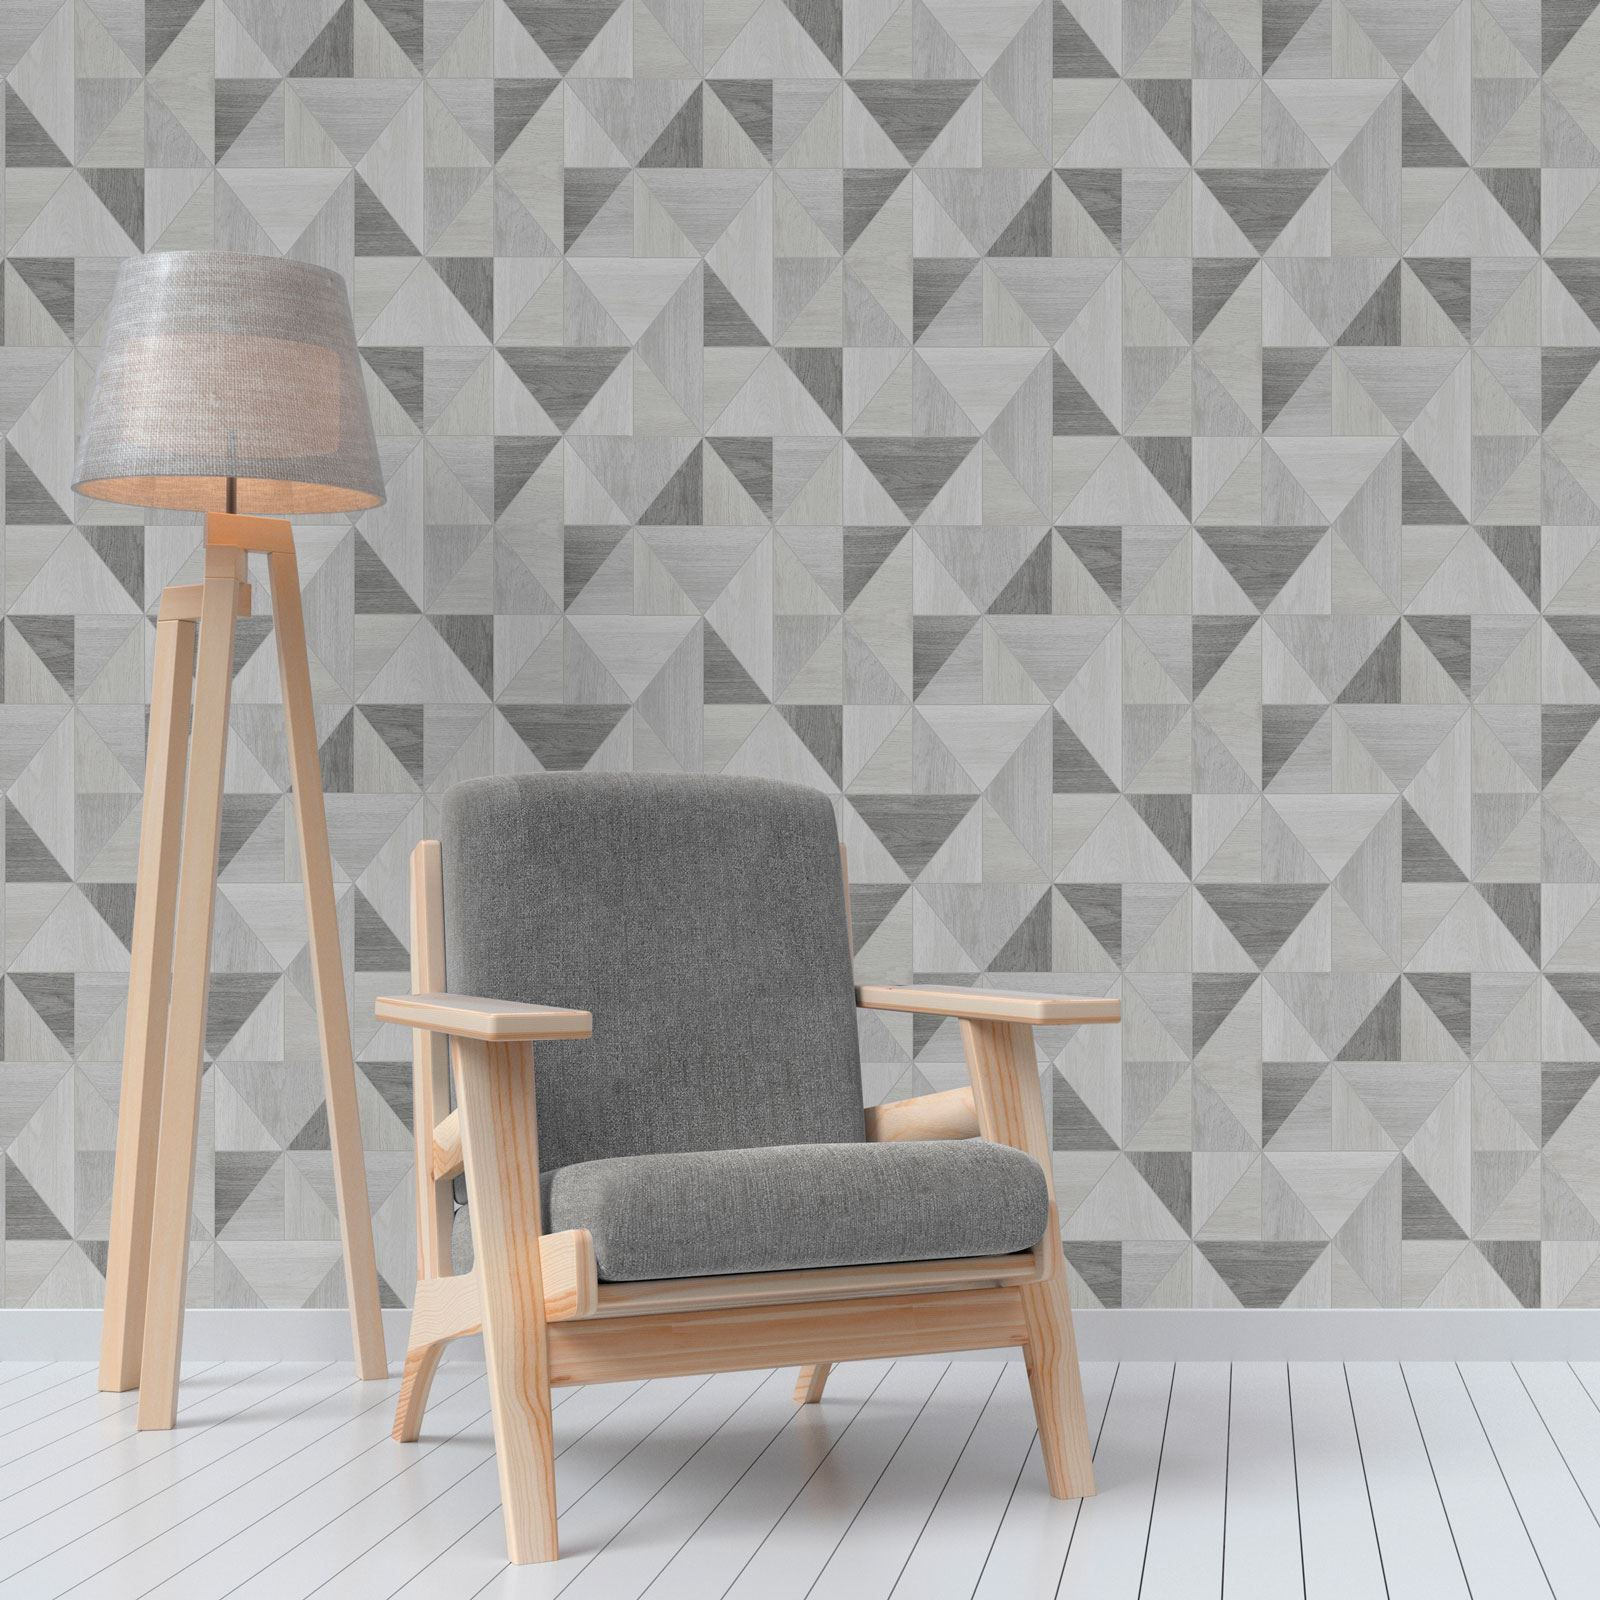 GEOMETRIC METALLIC WALLPAPER FINE DECOR APEX Amp WOW